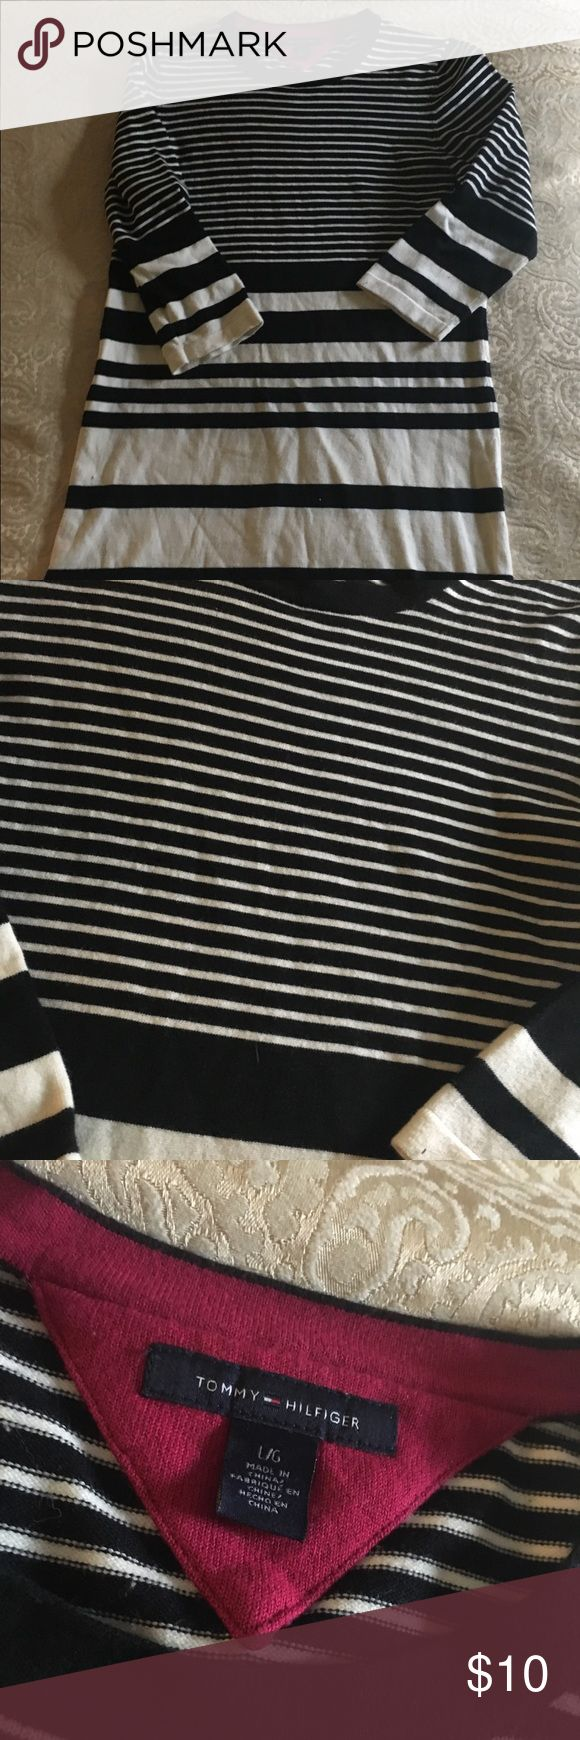 Tommy Hilfiger Sweater Dress Black and white sweater dress  Size large but more of a medium  Tommy Hilfiger knit dress.  Great with leggings!   Hardly worn Tommy Hilfiger Dresses Midi